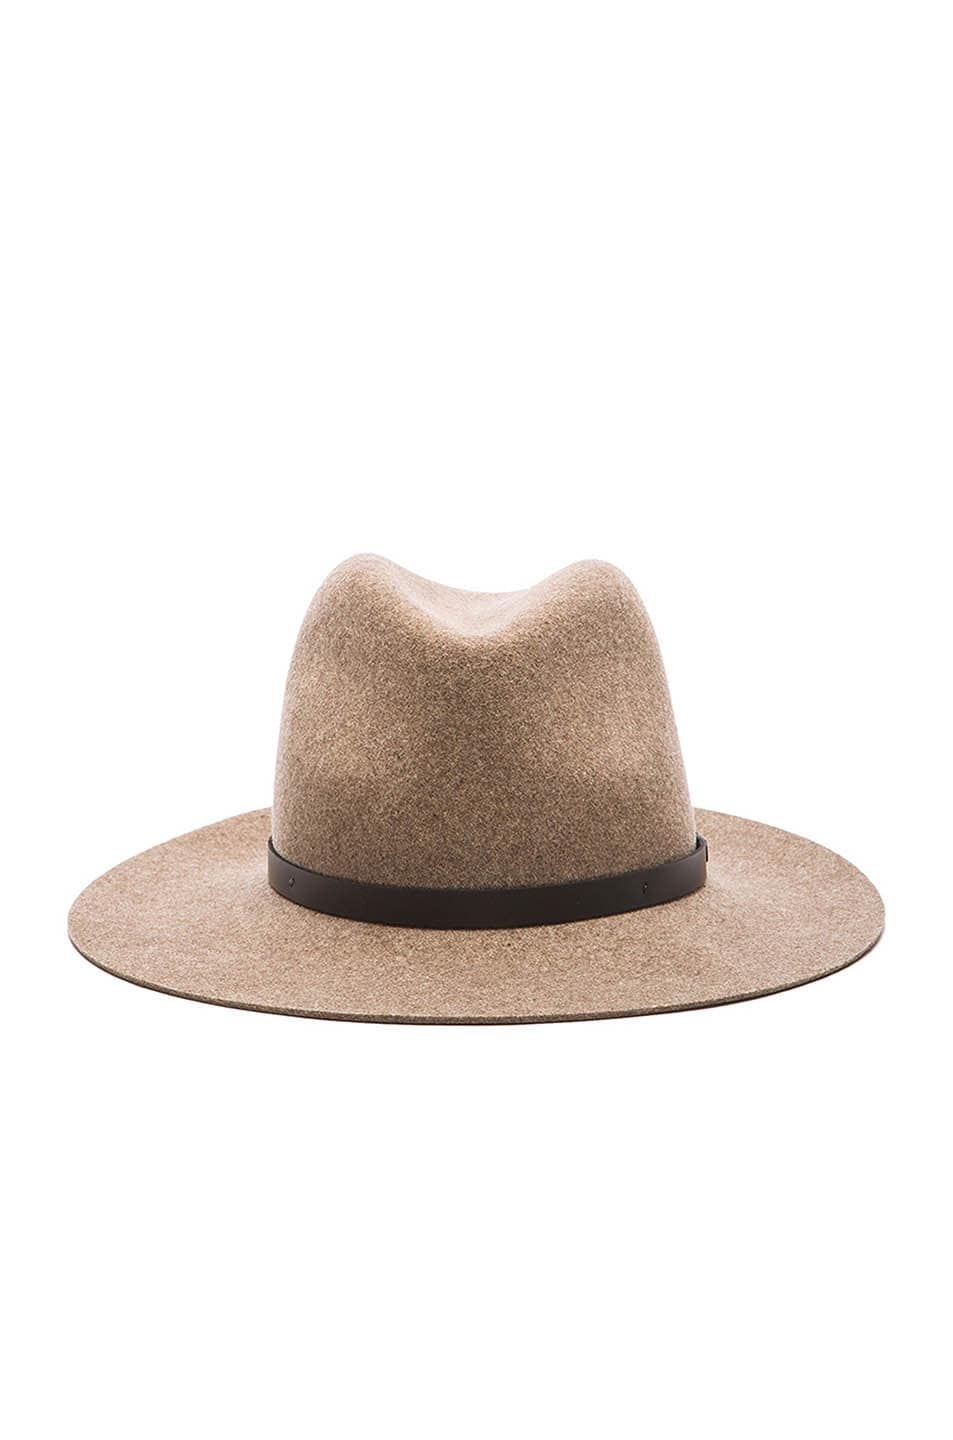 Image 1 of Rag & Bone Floppy Brim Fedora Hat in Brown Multi